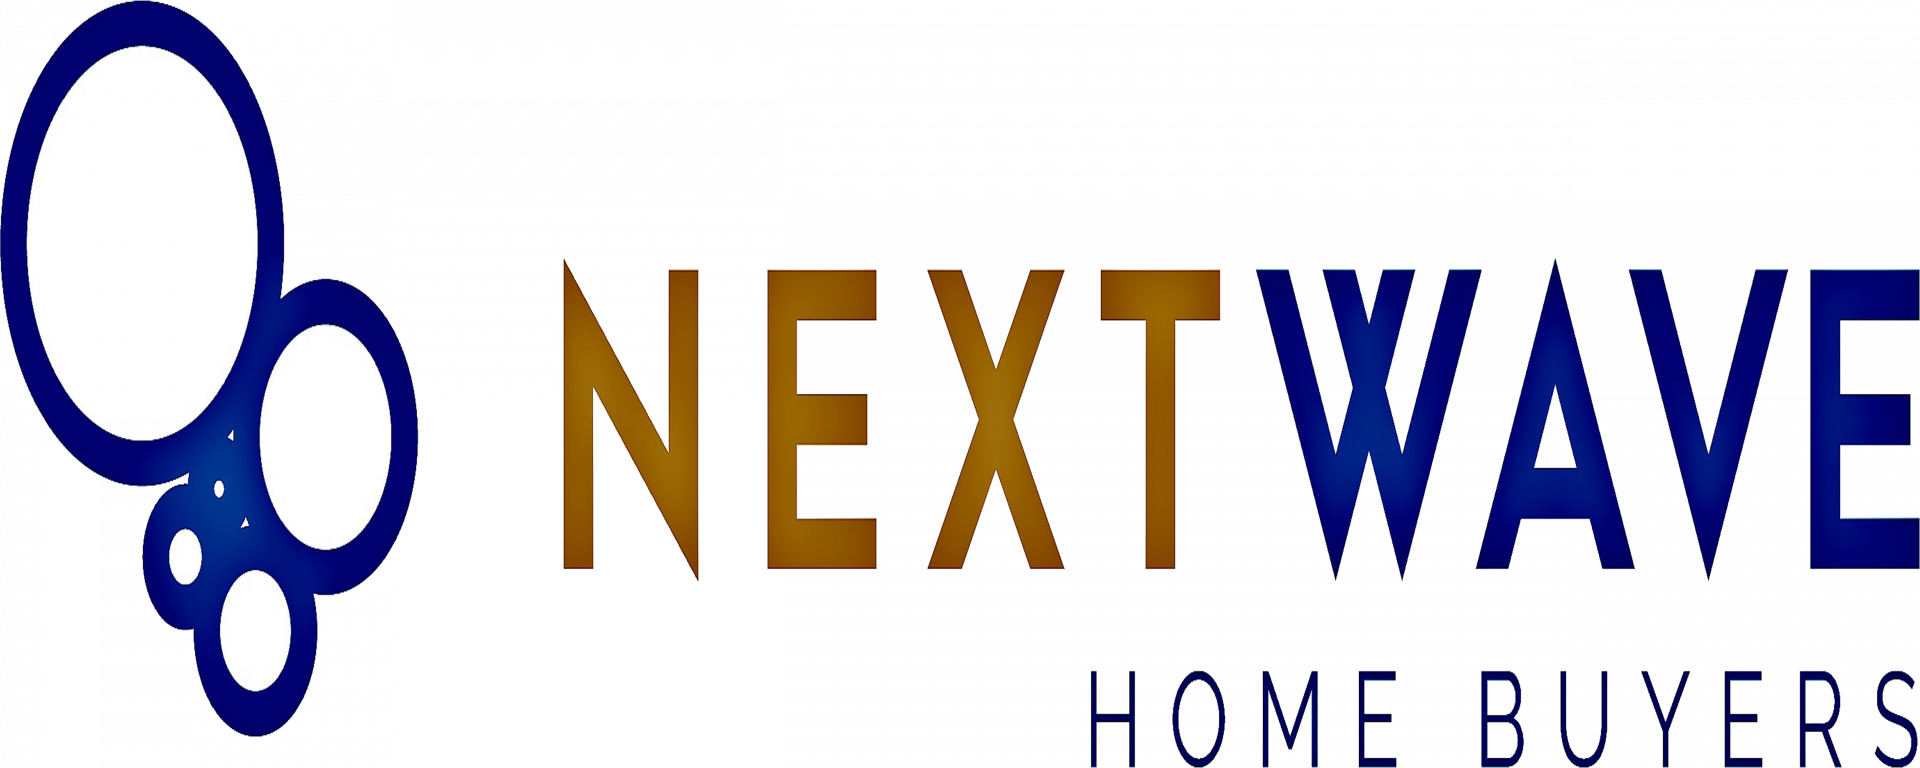 Nextwave Home Buyers – A simple way to sell your home  logo